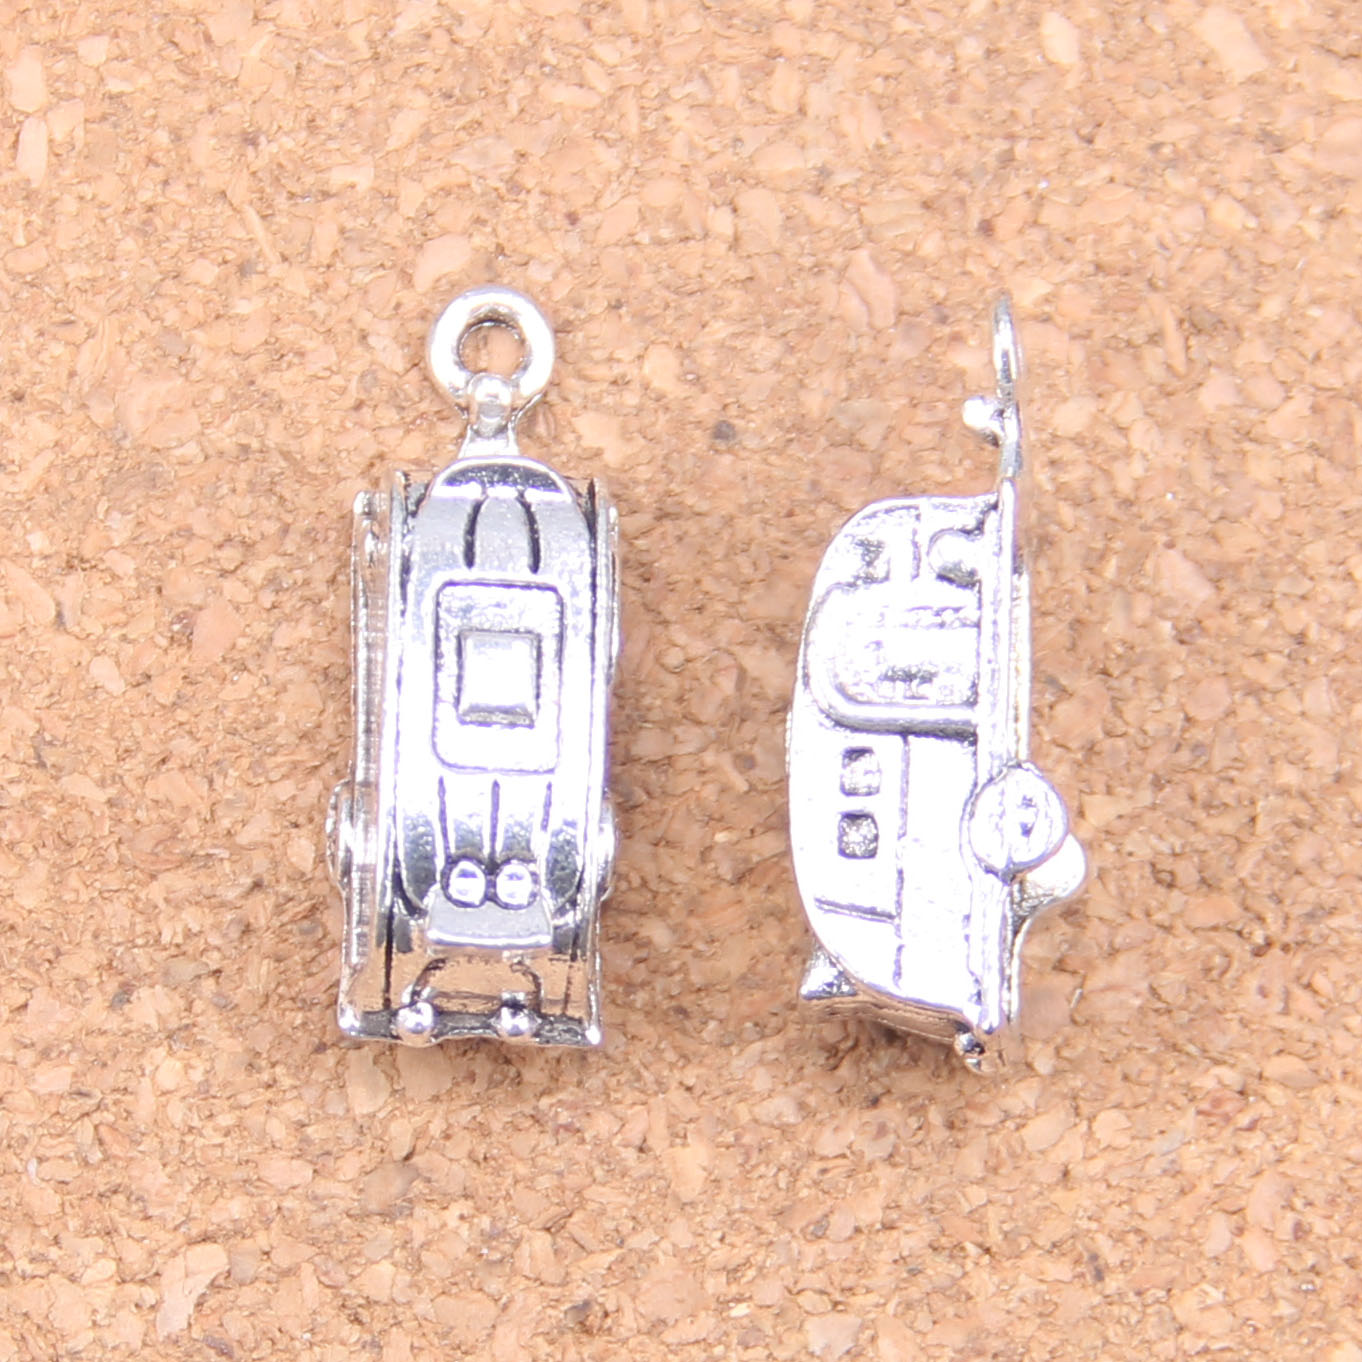 Systematic 30pcs Charms Shuttle Trailer Touring 26x7x6mm Antique Pendants,vintage Tibetan Silver Jewelry,diy For Bracelet Necklace